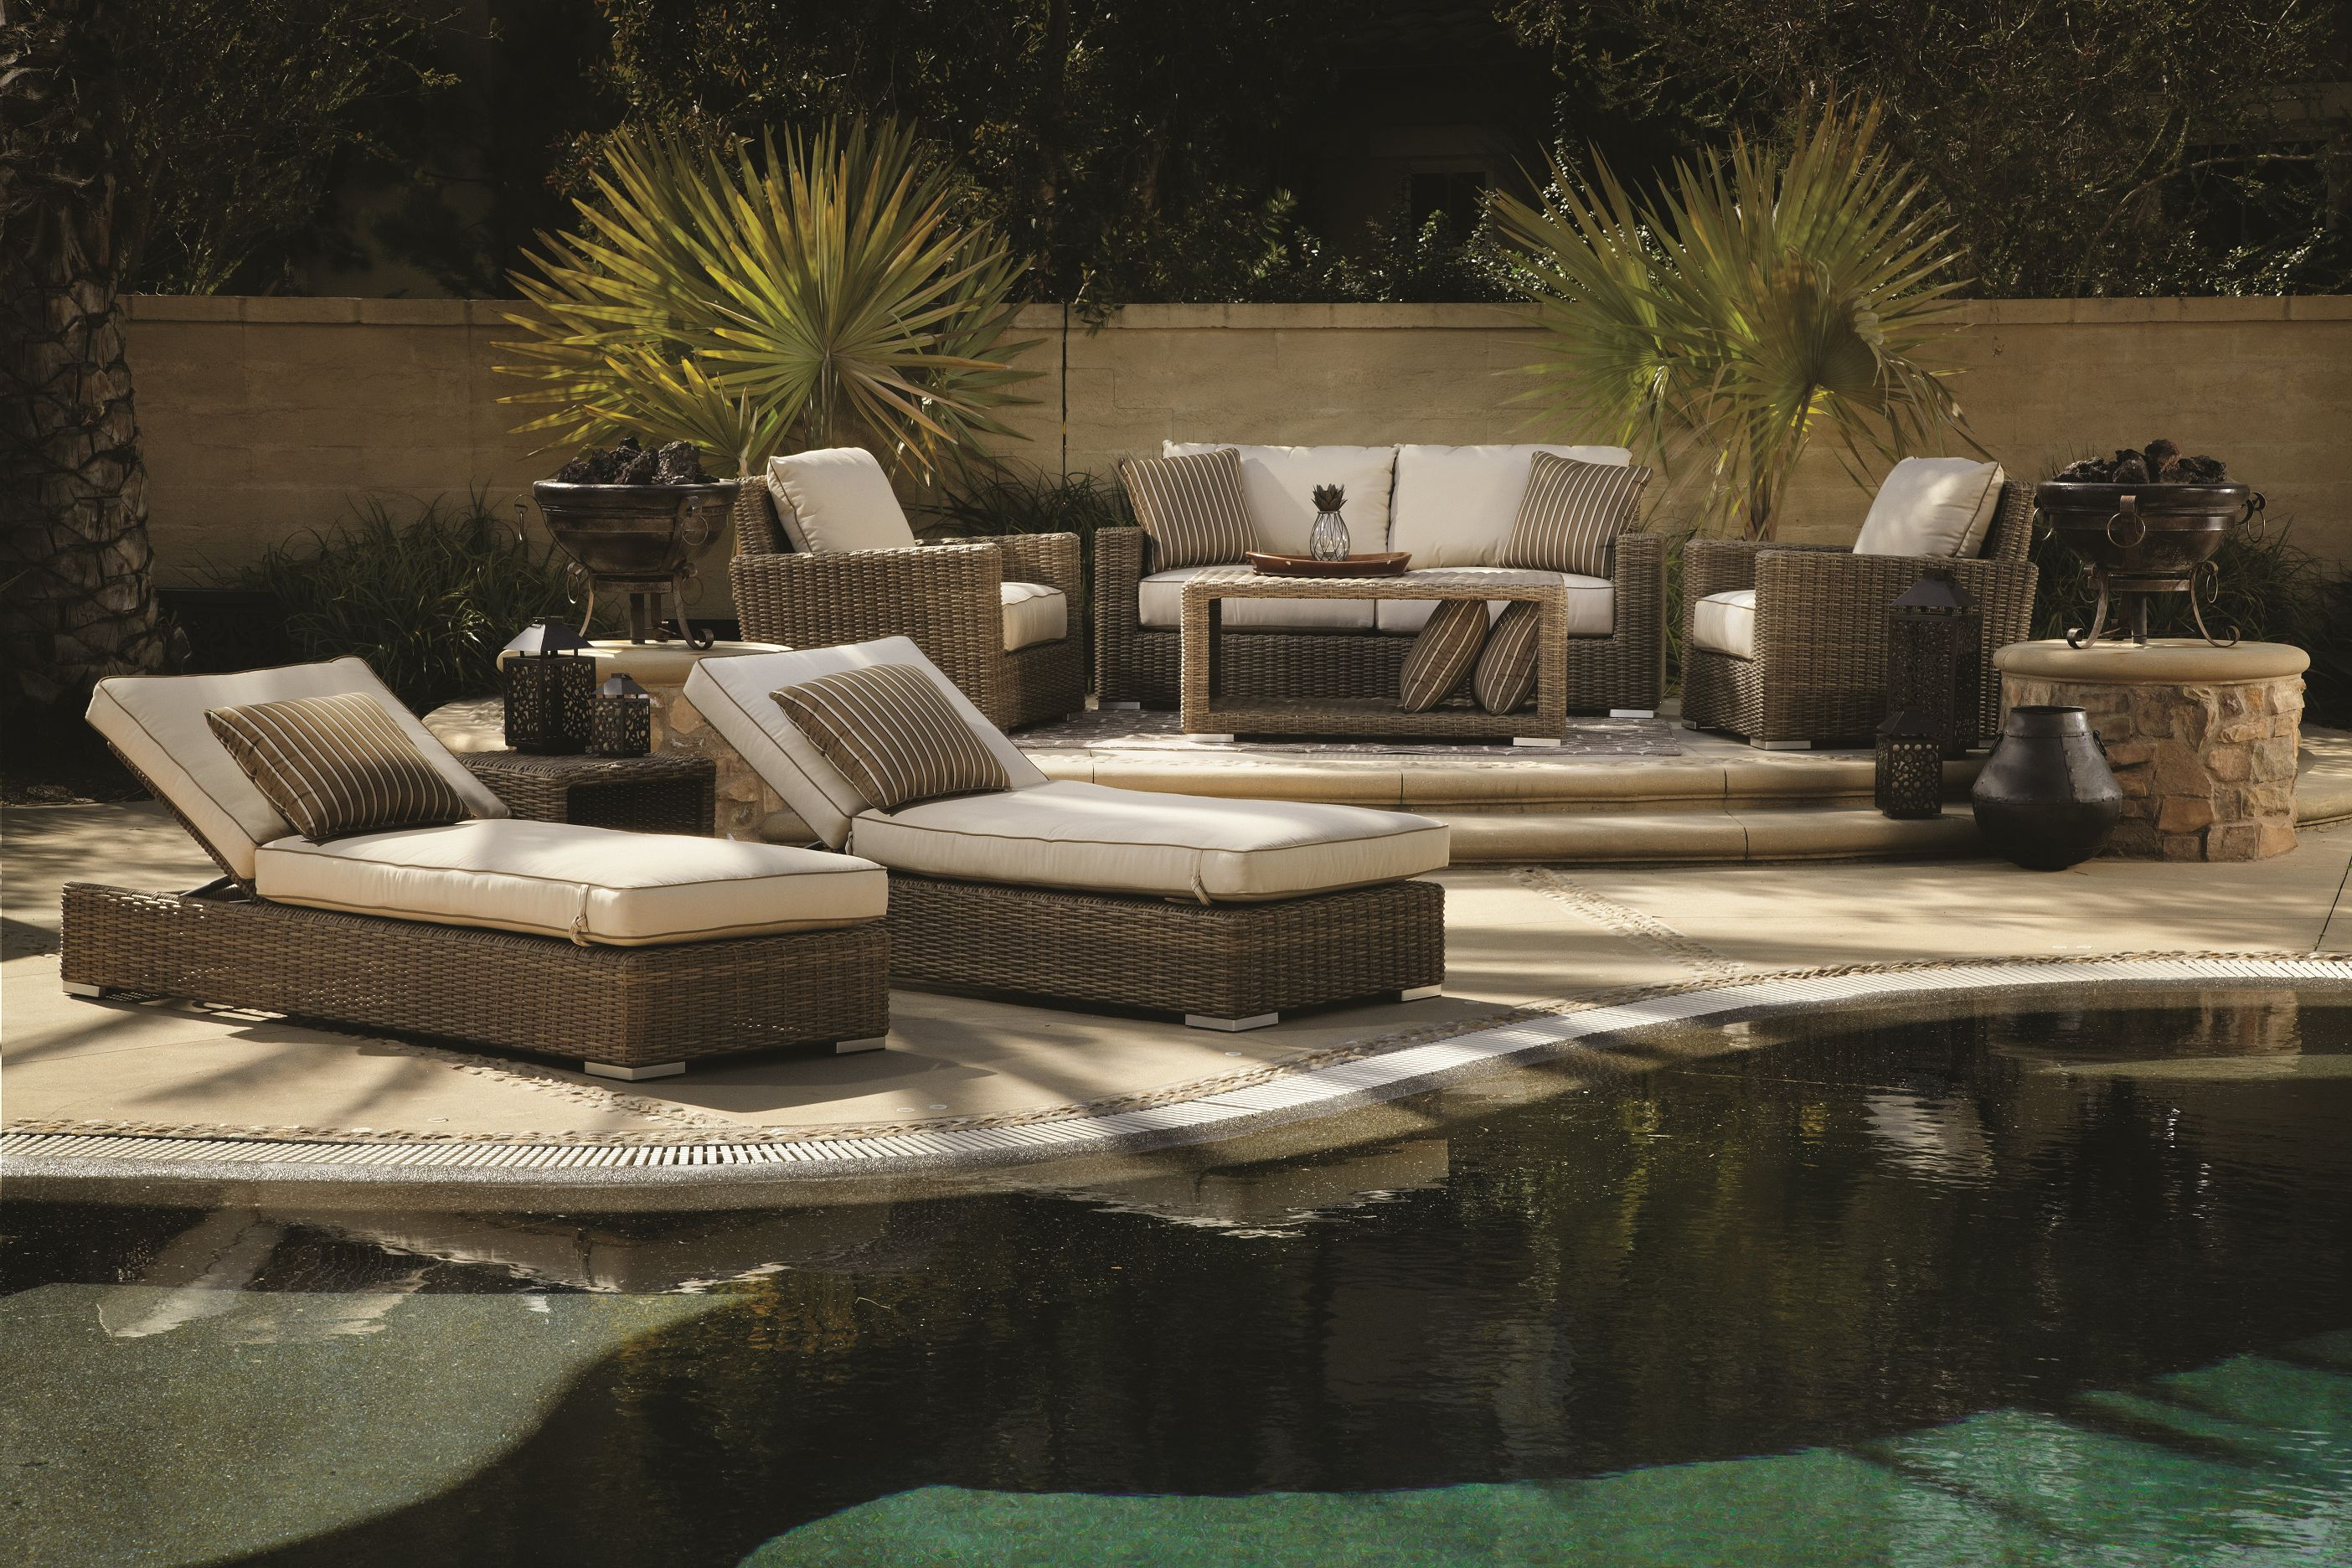 So inviting! Love this soft lighting!